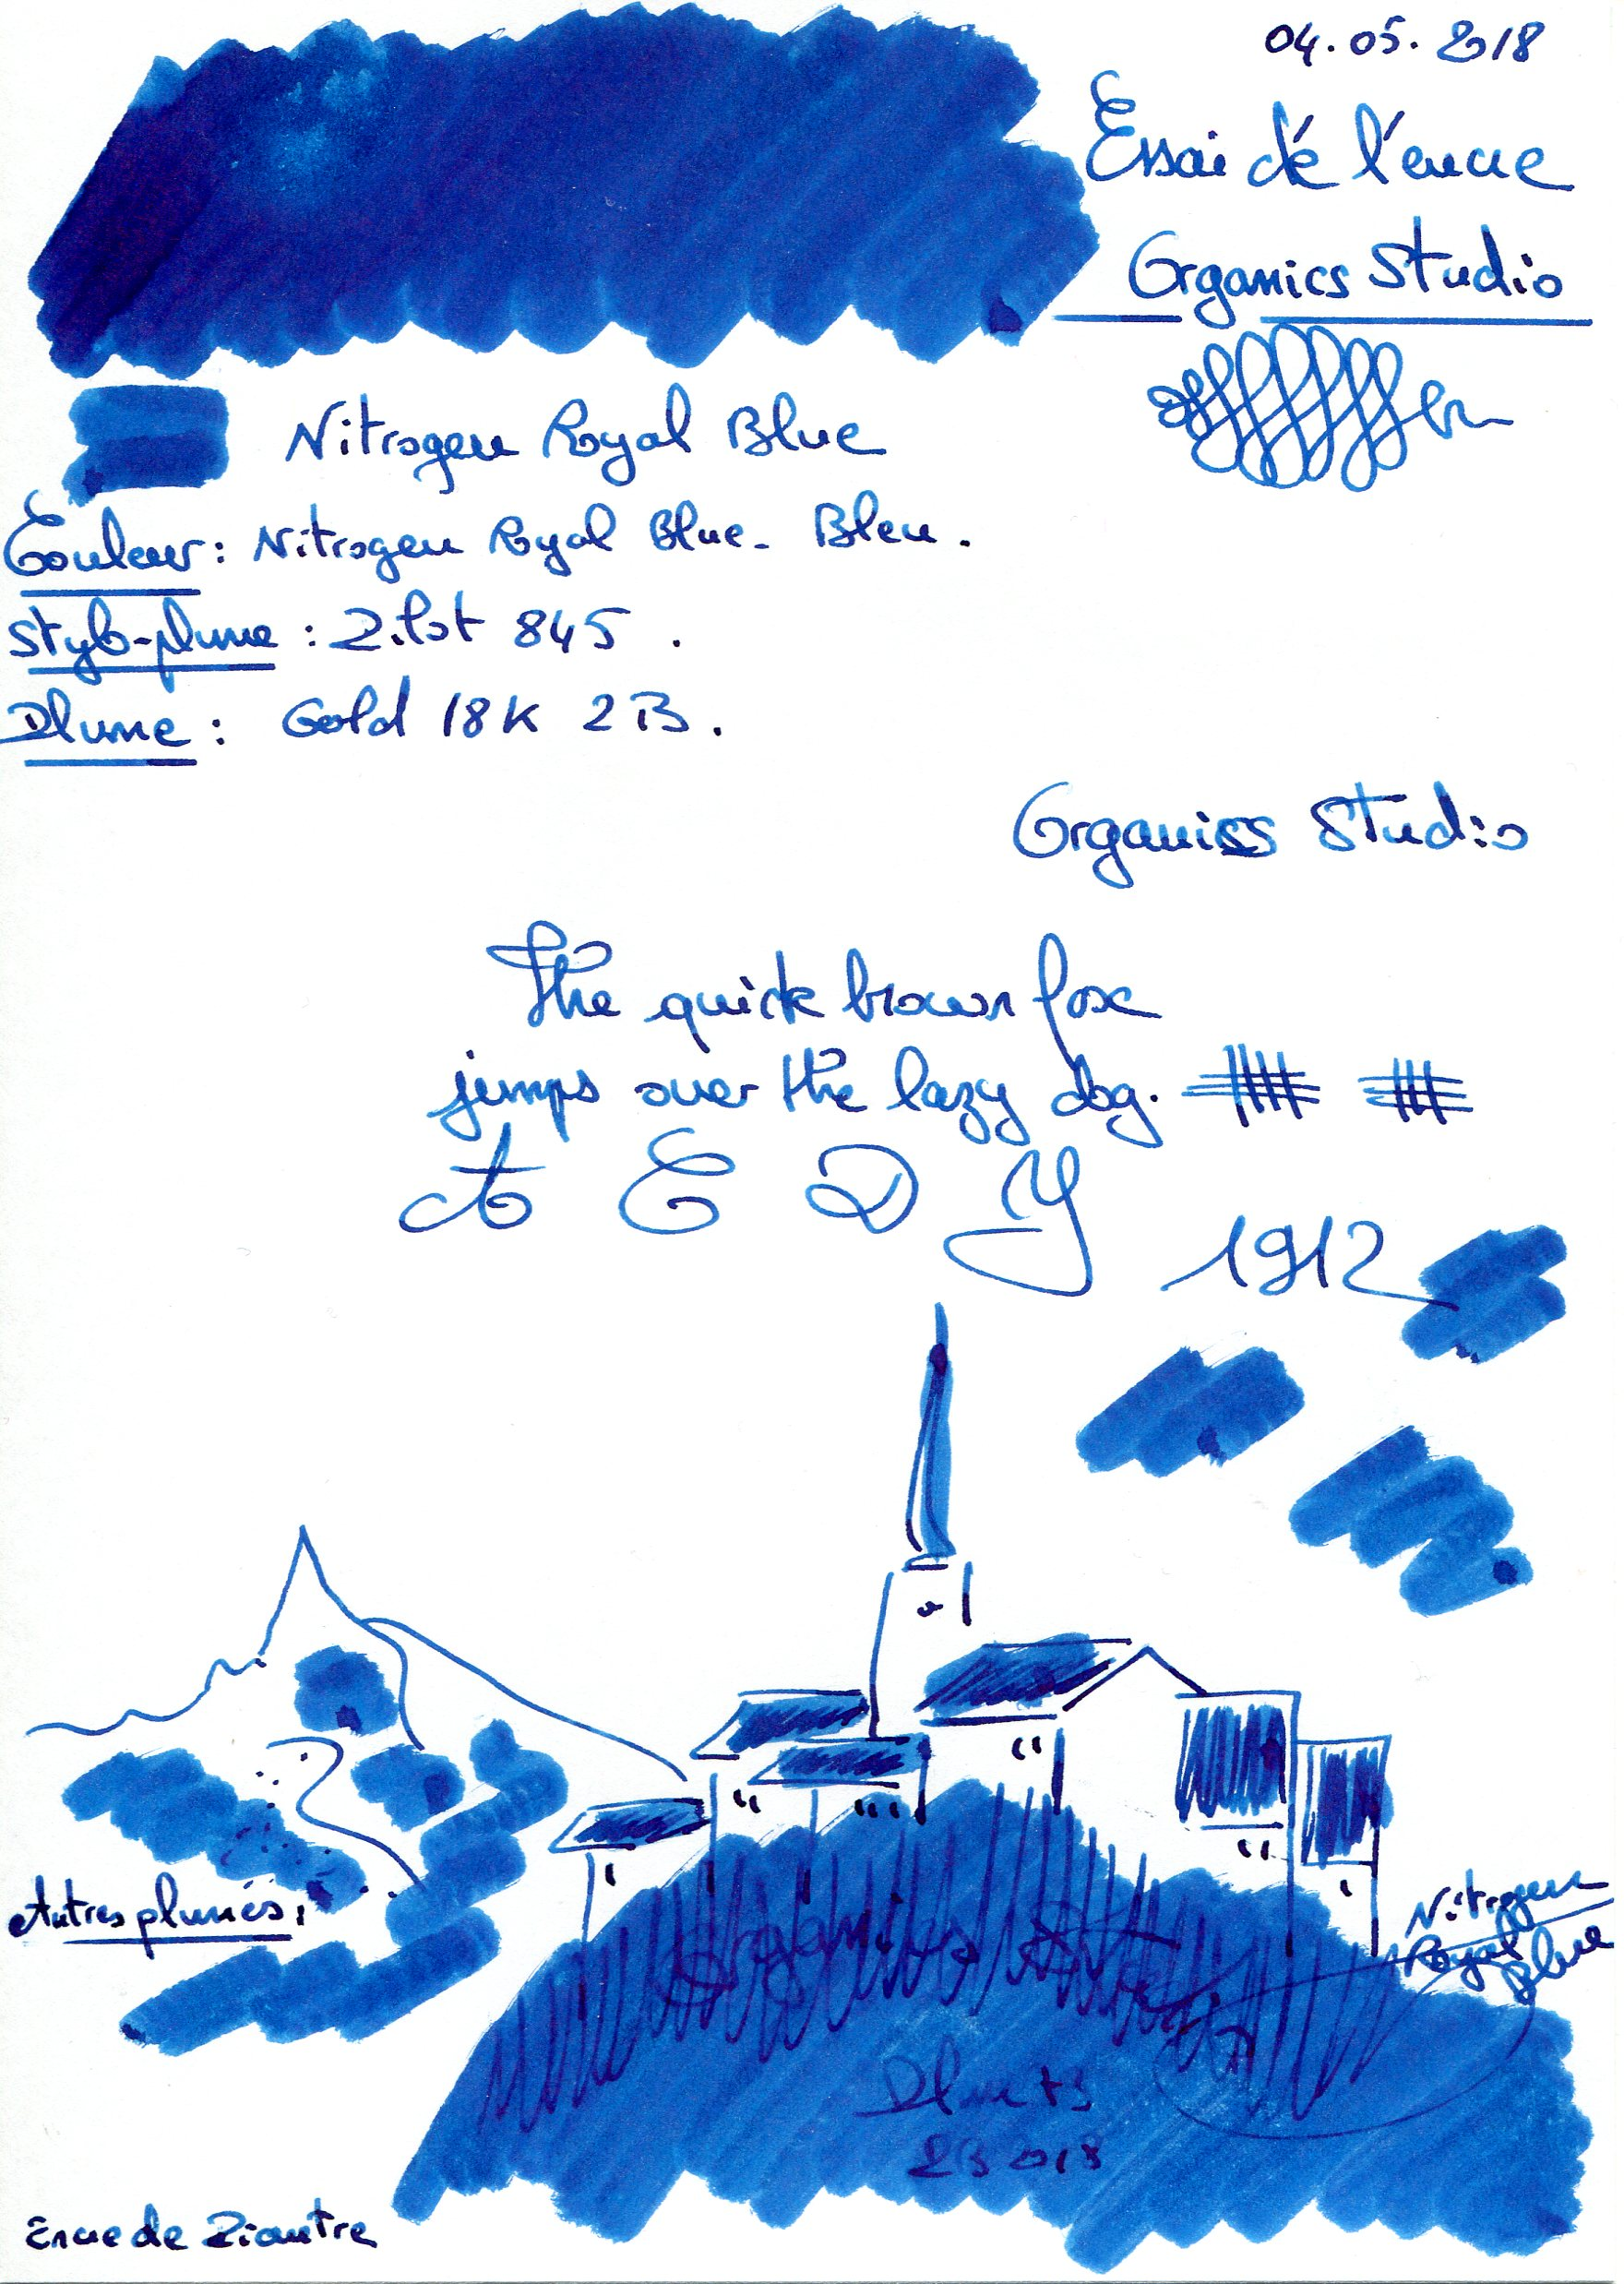 Nitrogen Royal Blue ink Organics Studio